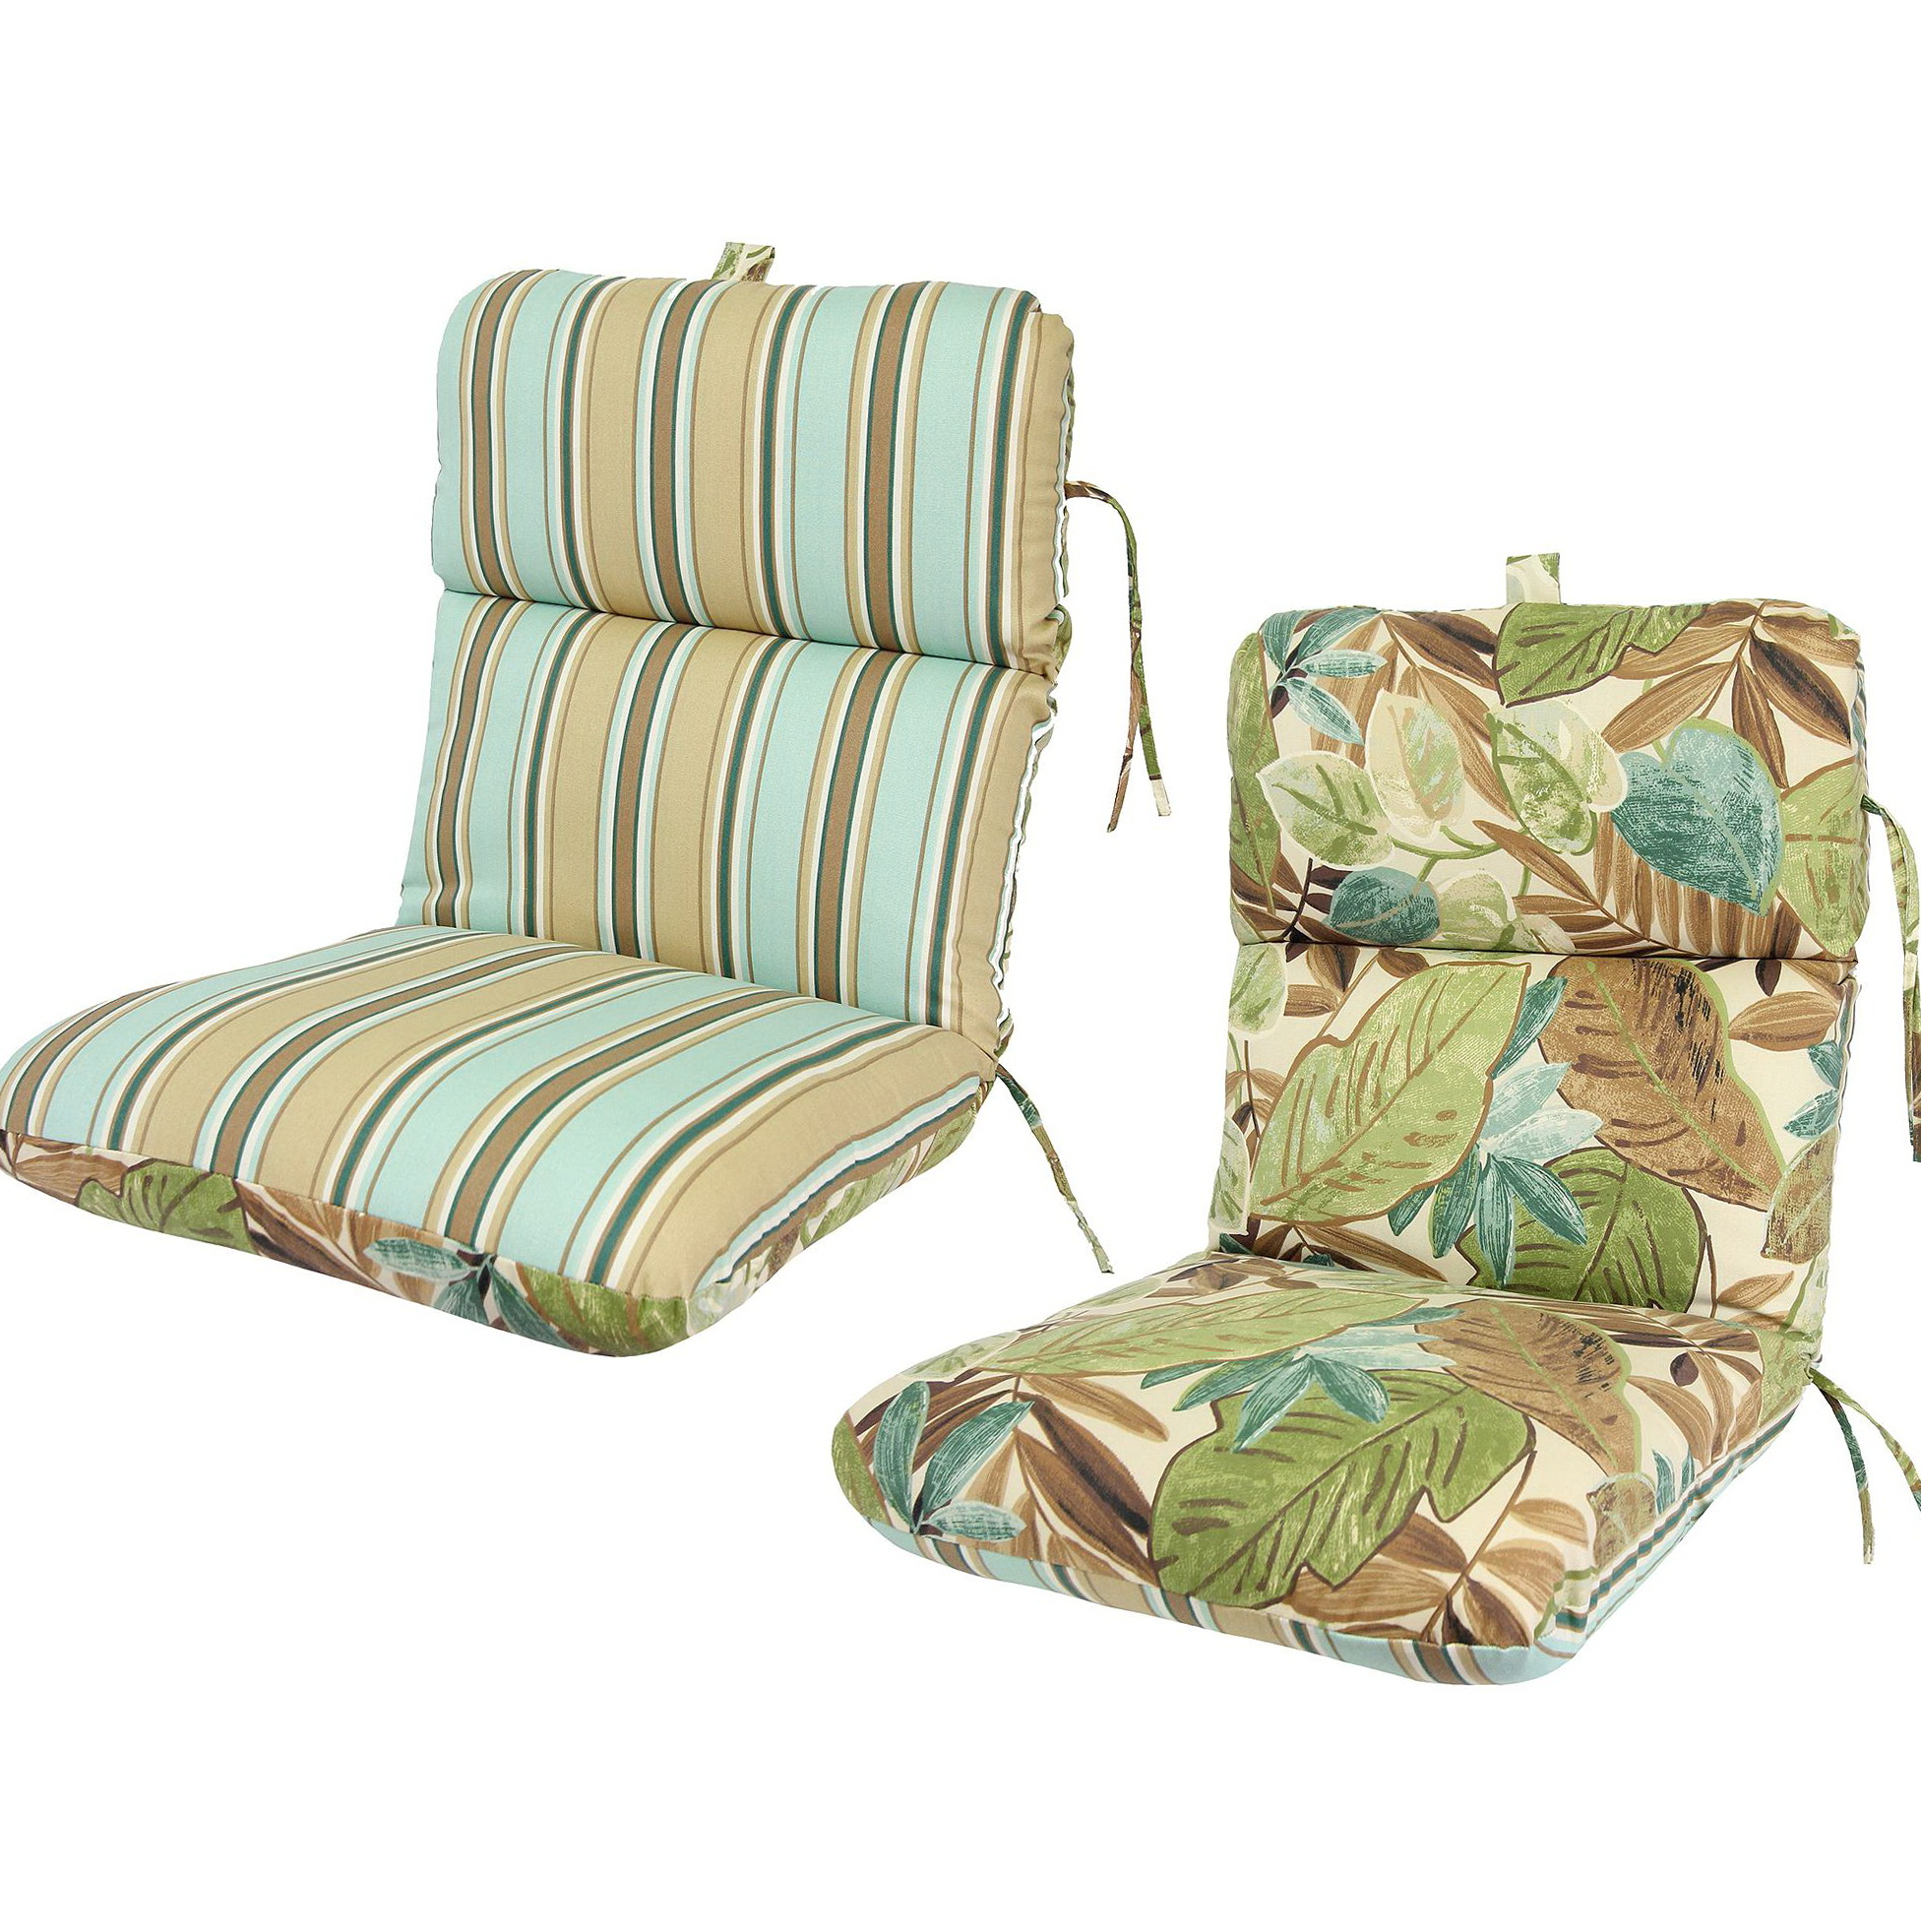 Cushions For Patio Furniture At Walmart